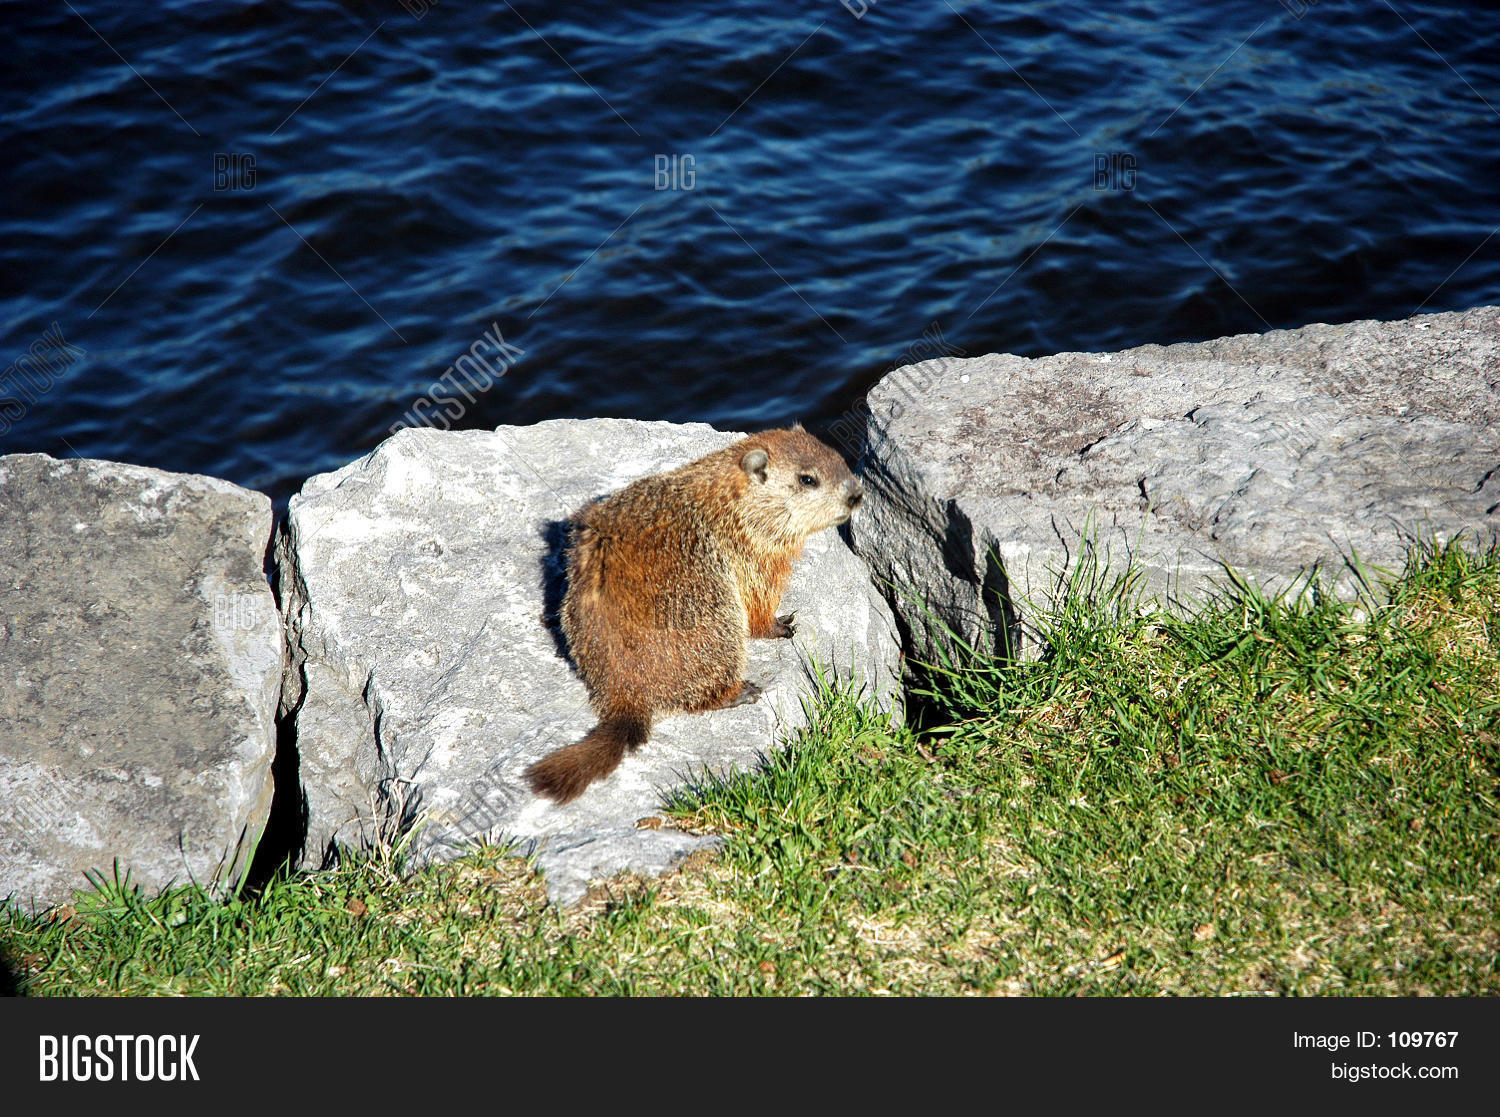 Fat Groundhog Image & Photo (Free Trial)